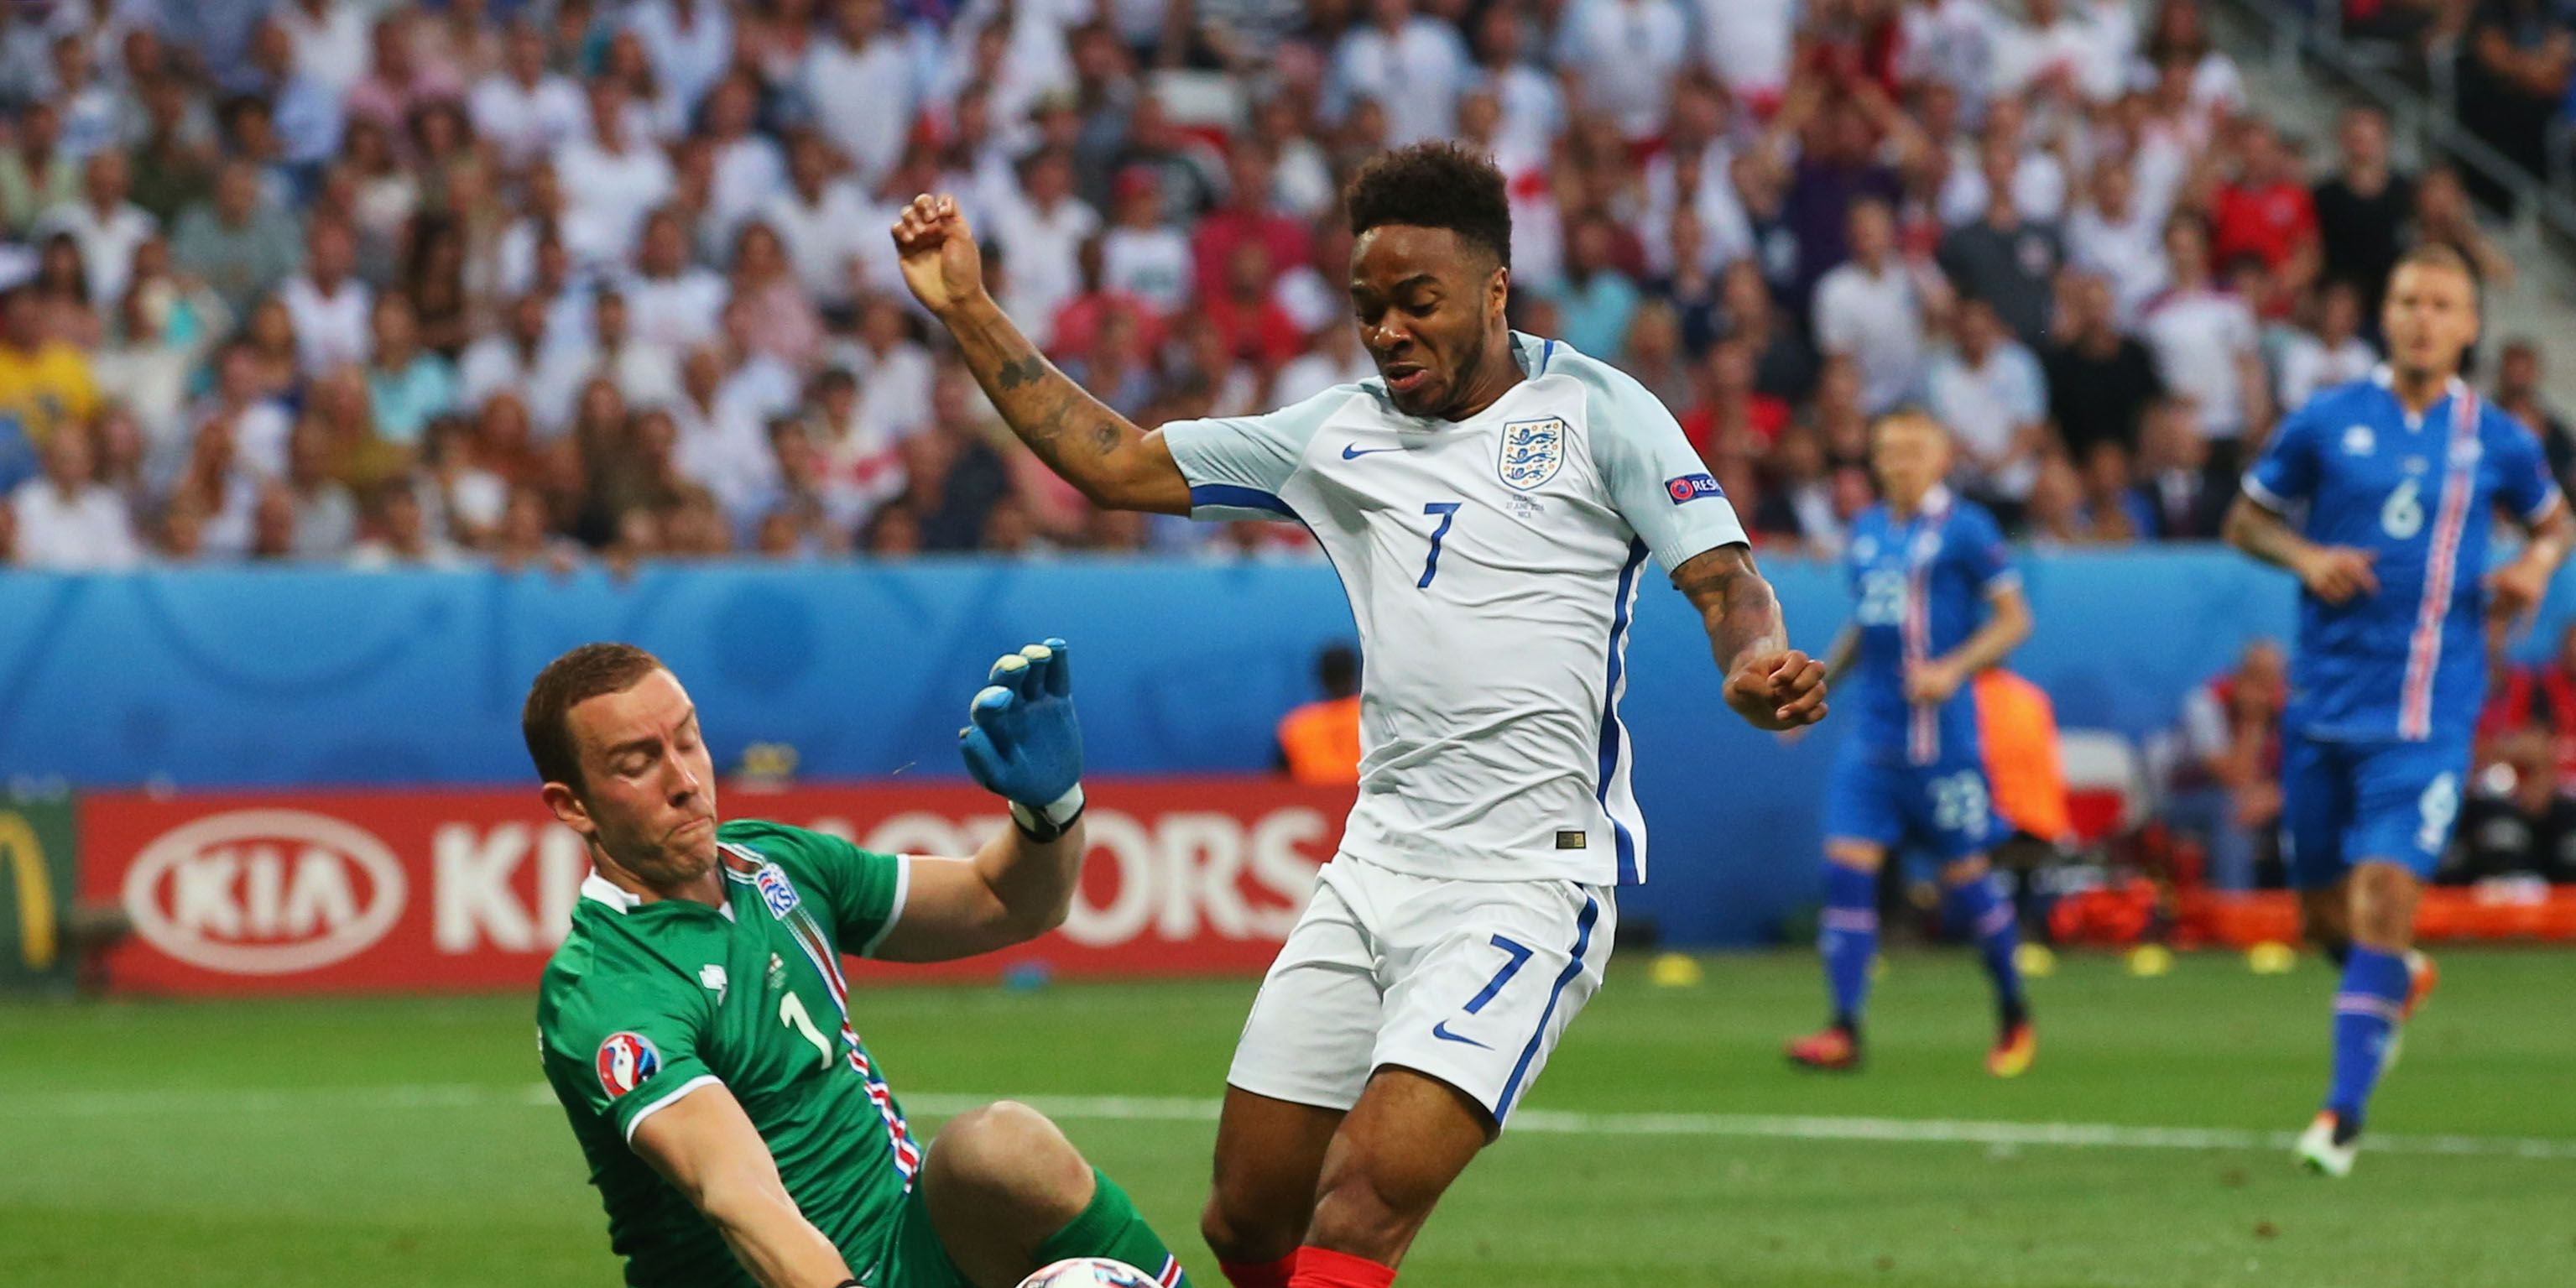 Raheem Sterling of England is fouled in the penalty area by Hannes Halldorsson of Ireland in Euro 2016